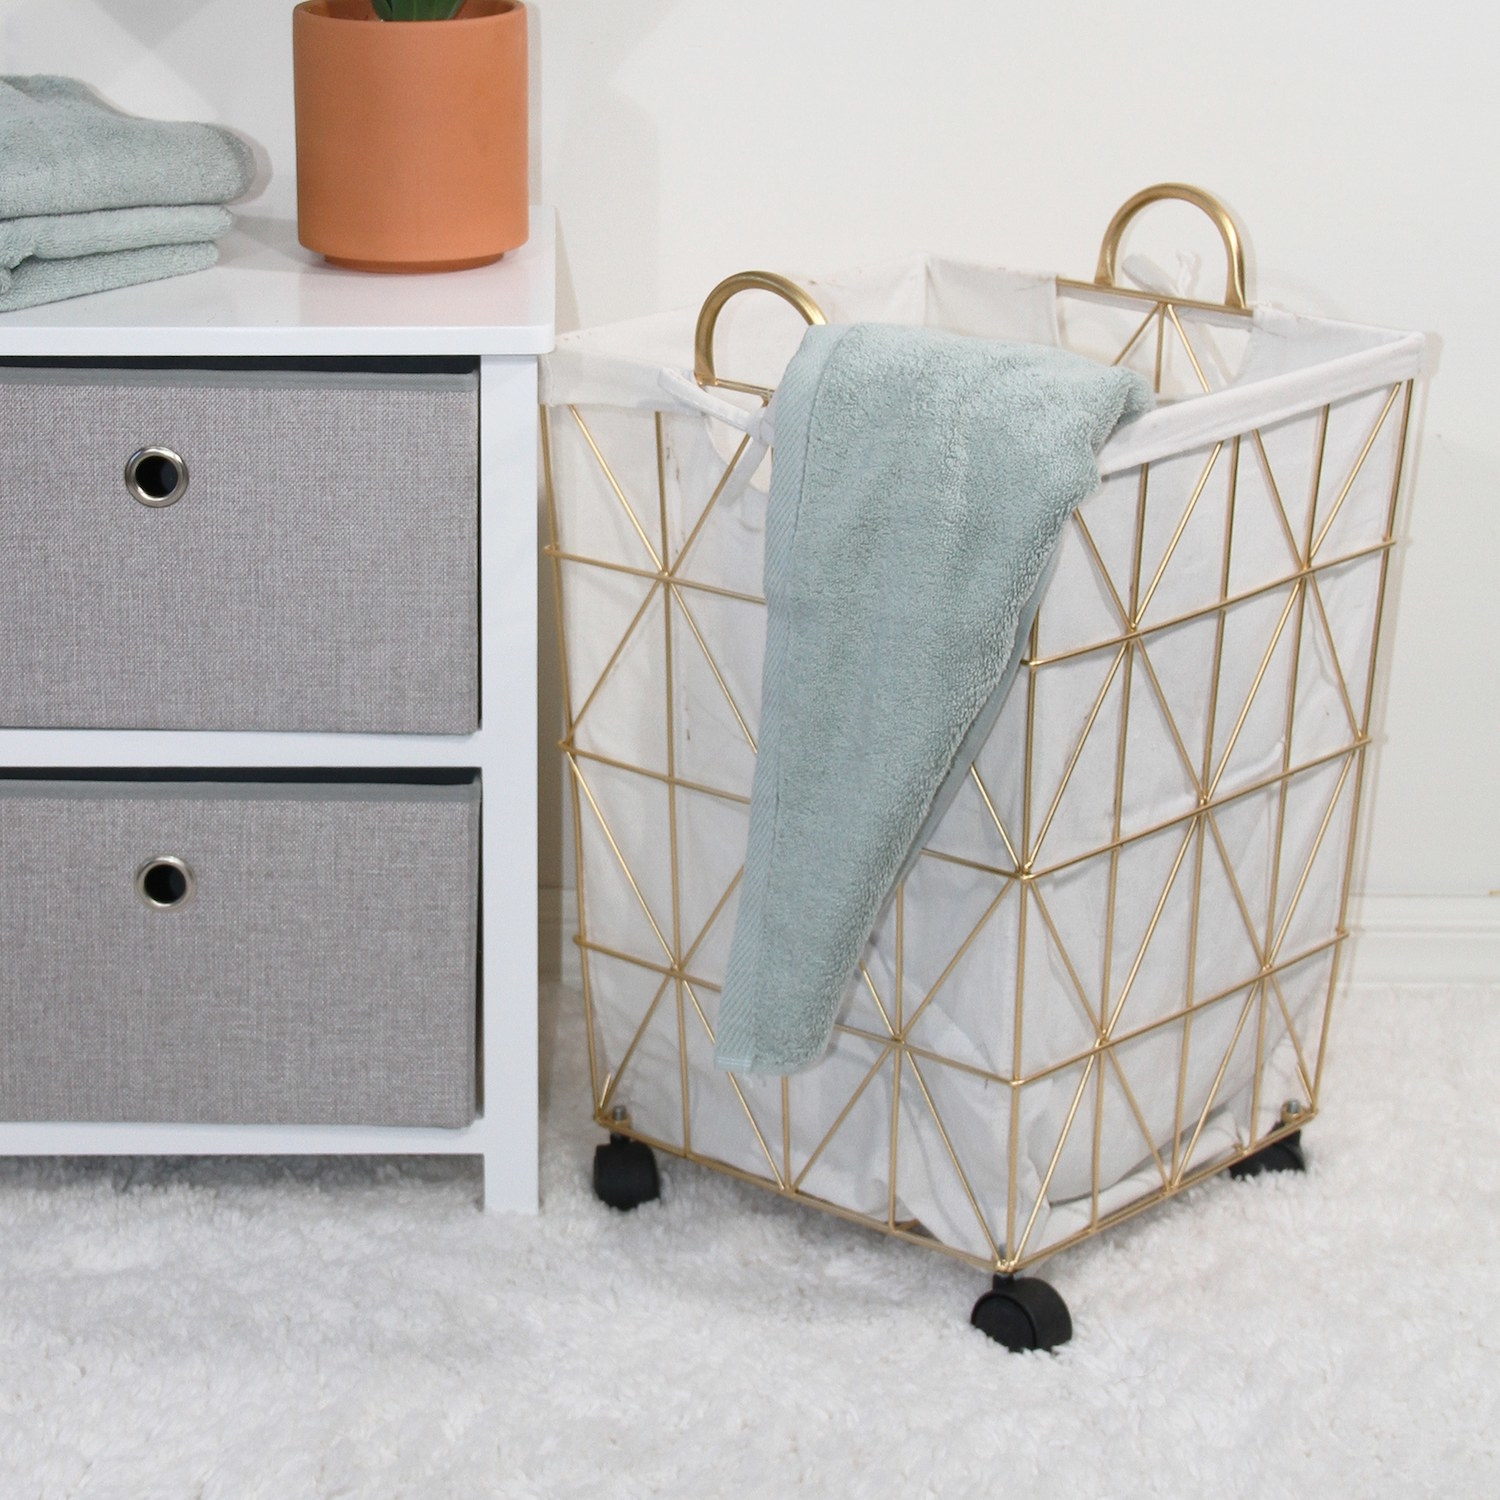 The gold hamper on black wheels in a laundry room